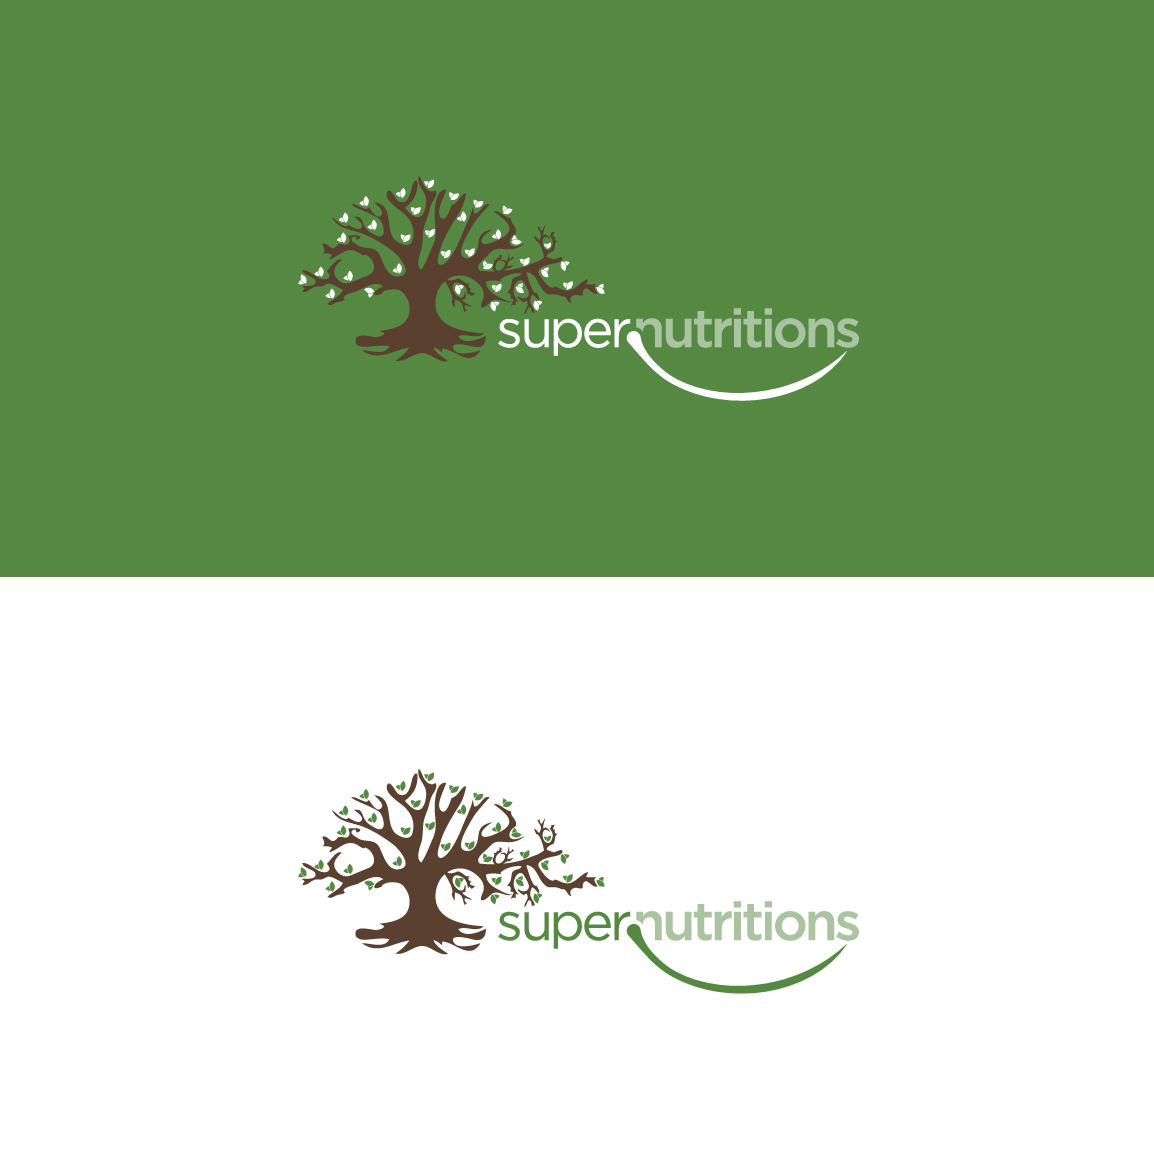 Natural Food online Store logo by Fanol Ademi